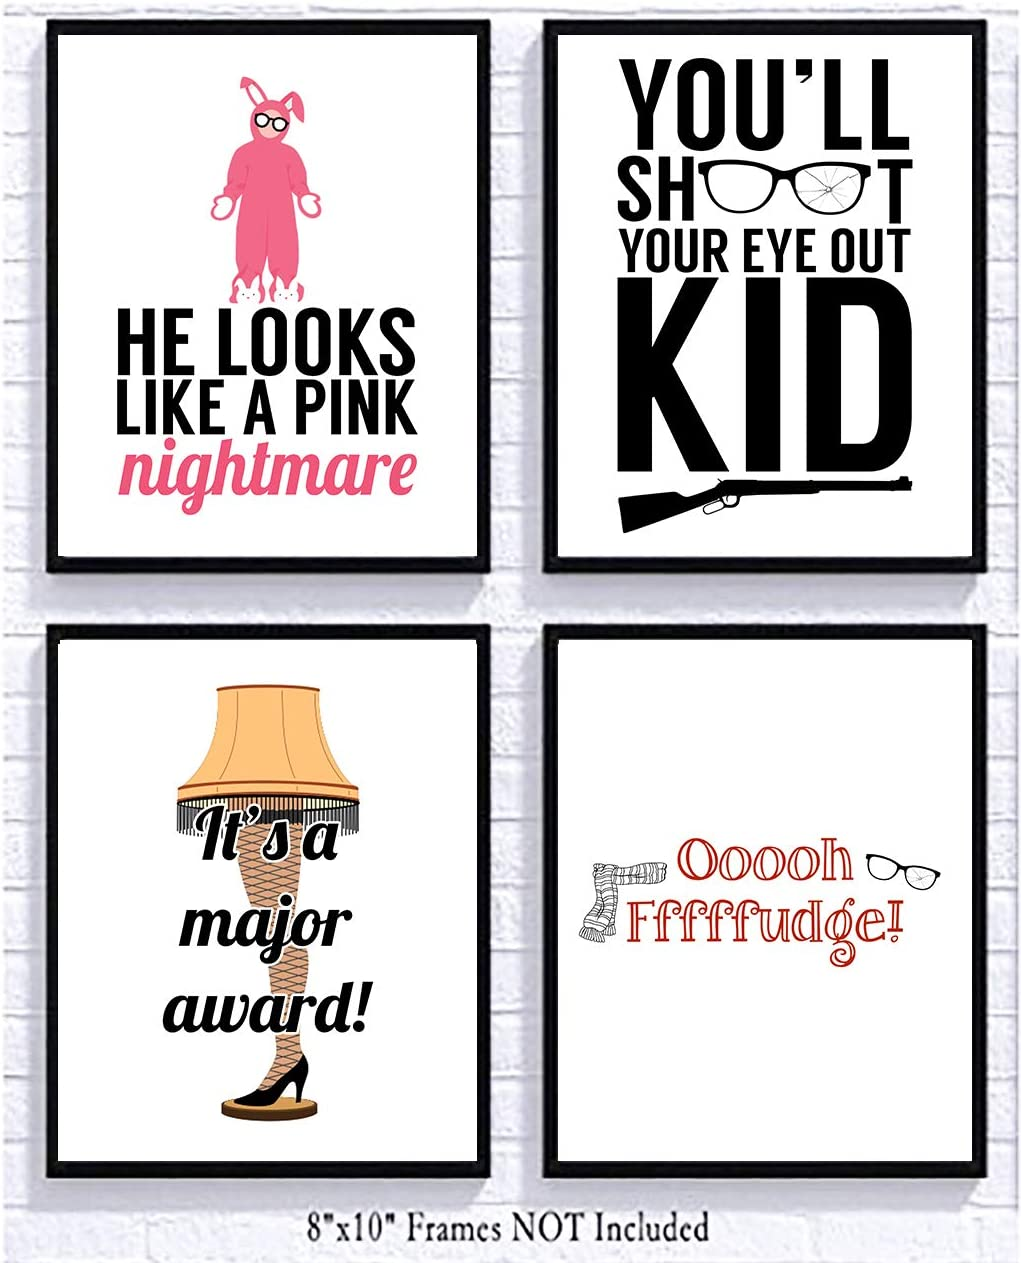 Silly Goose Gifts Christmas Movie Art Prints (Set of Four) 8x10in Signs Decoration Decor You'll Shoot Your Eye Out